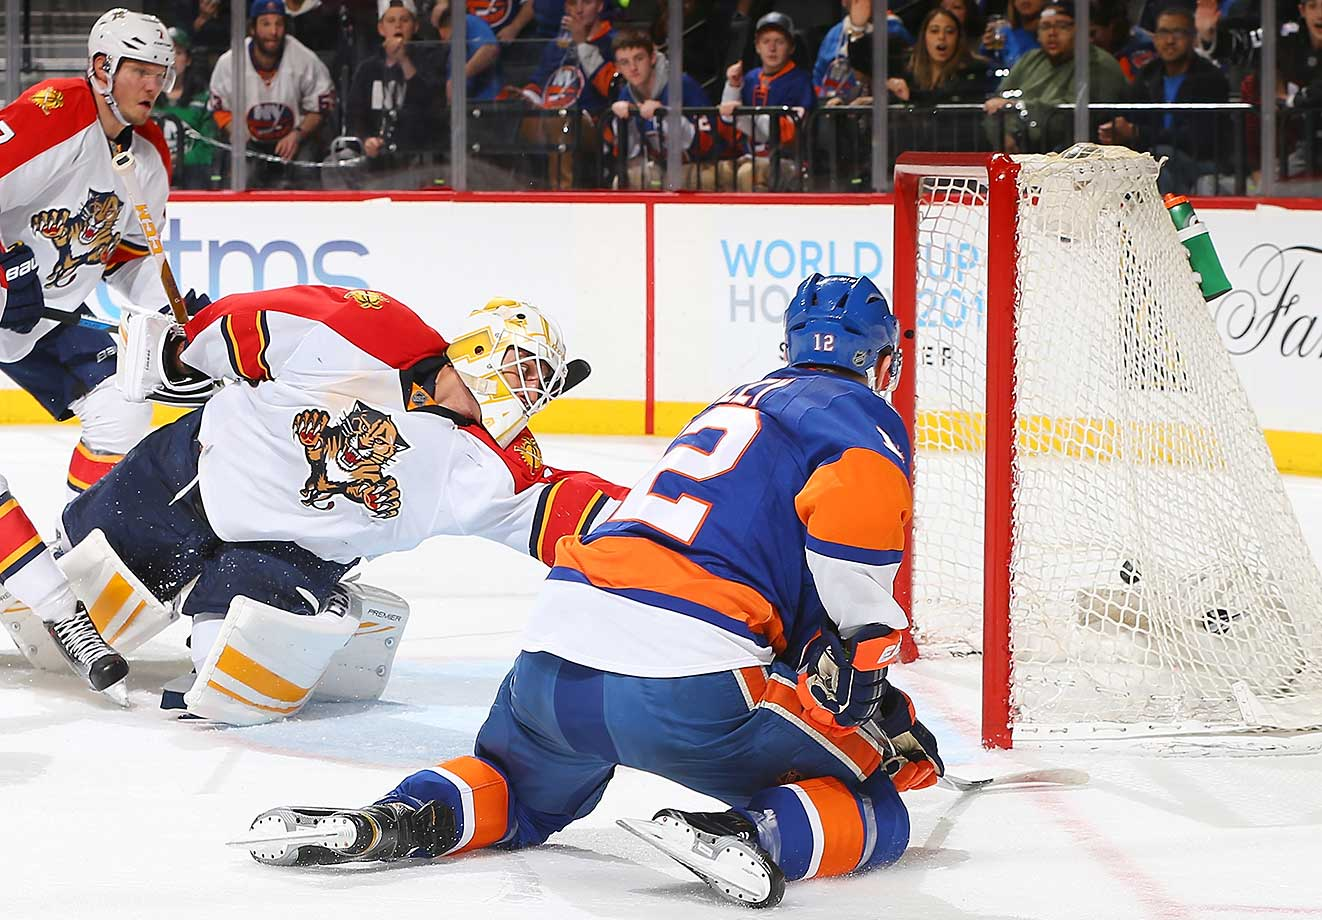 Josh Bailey of the New York Islanders scores a goal on Roberto Luongo of the Florida Panthers.